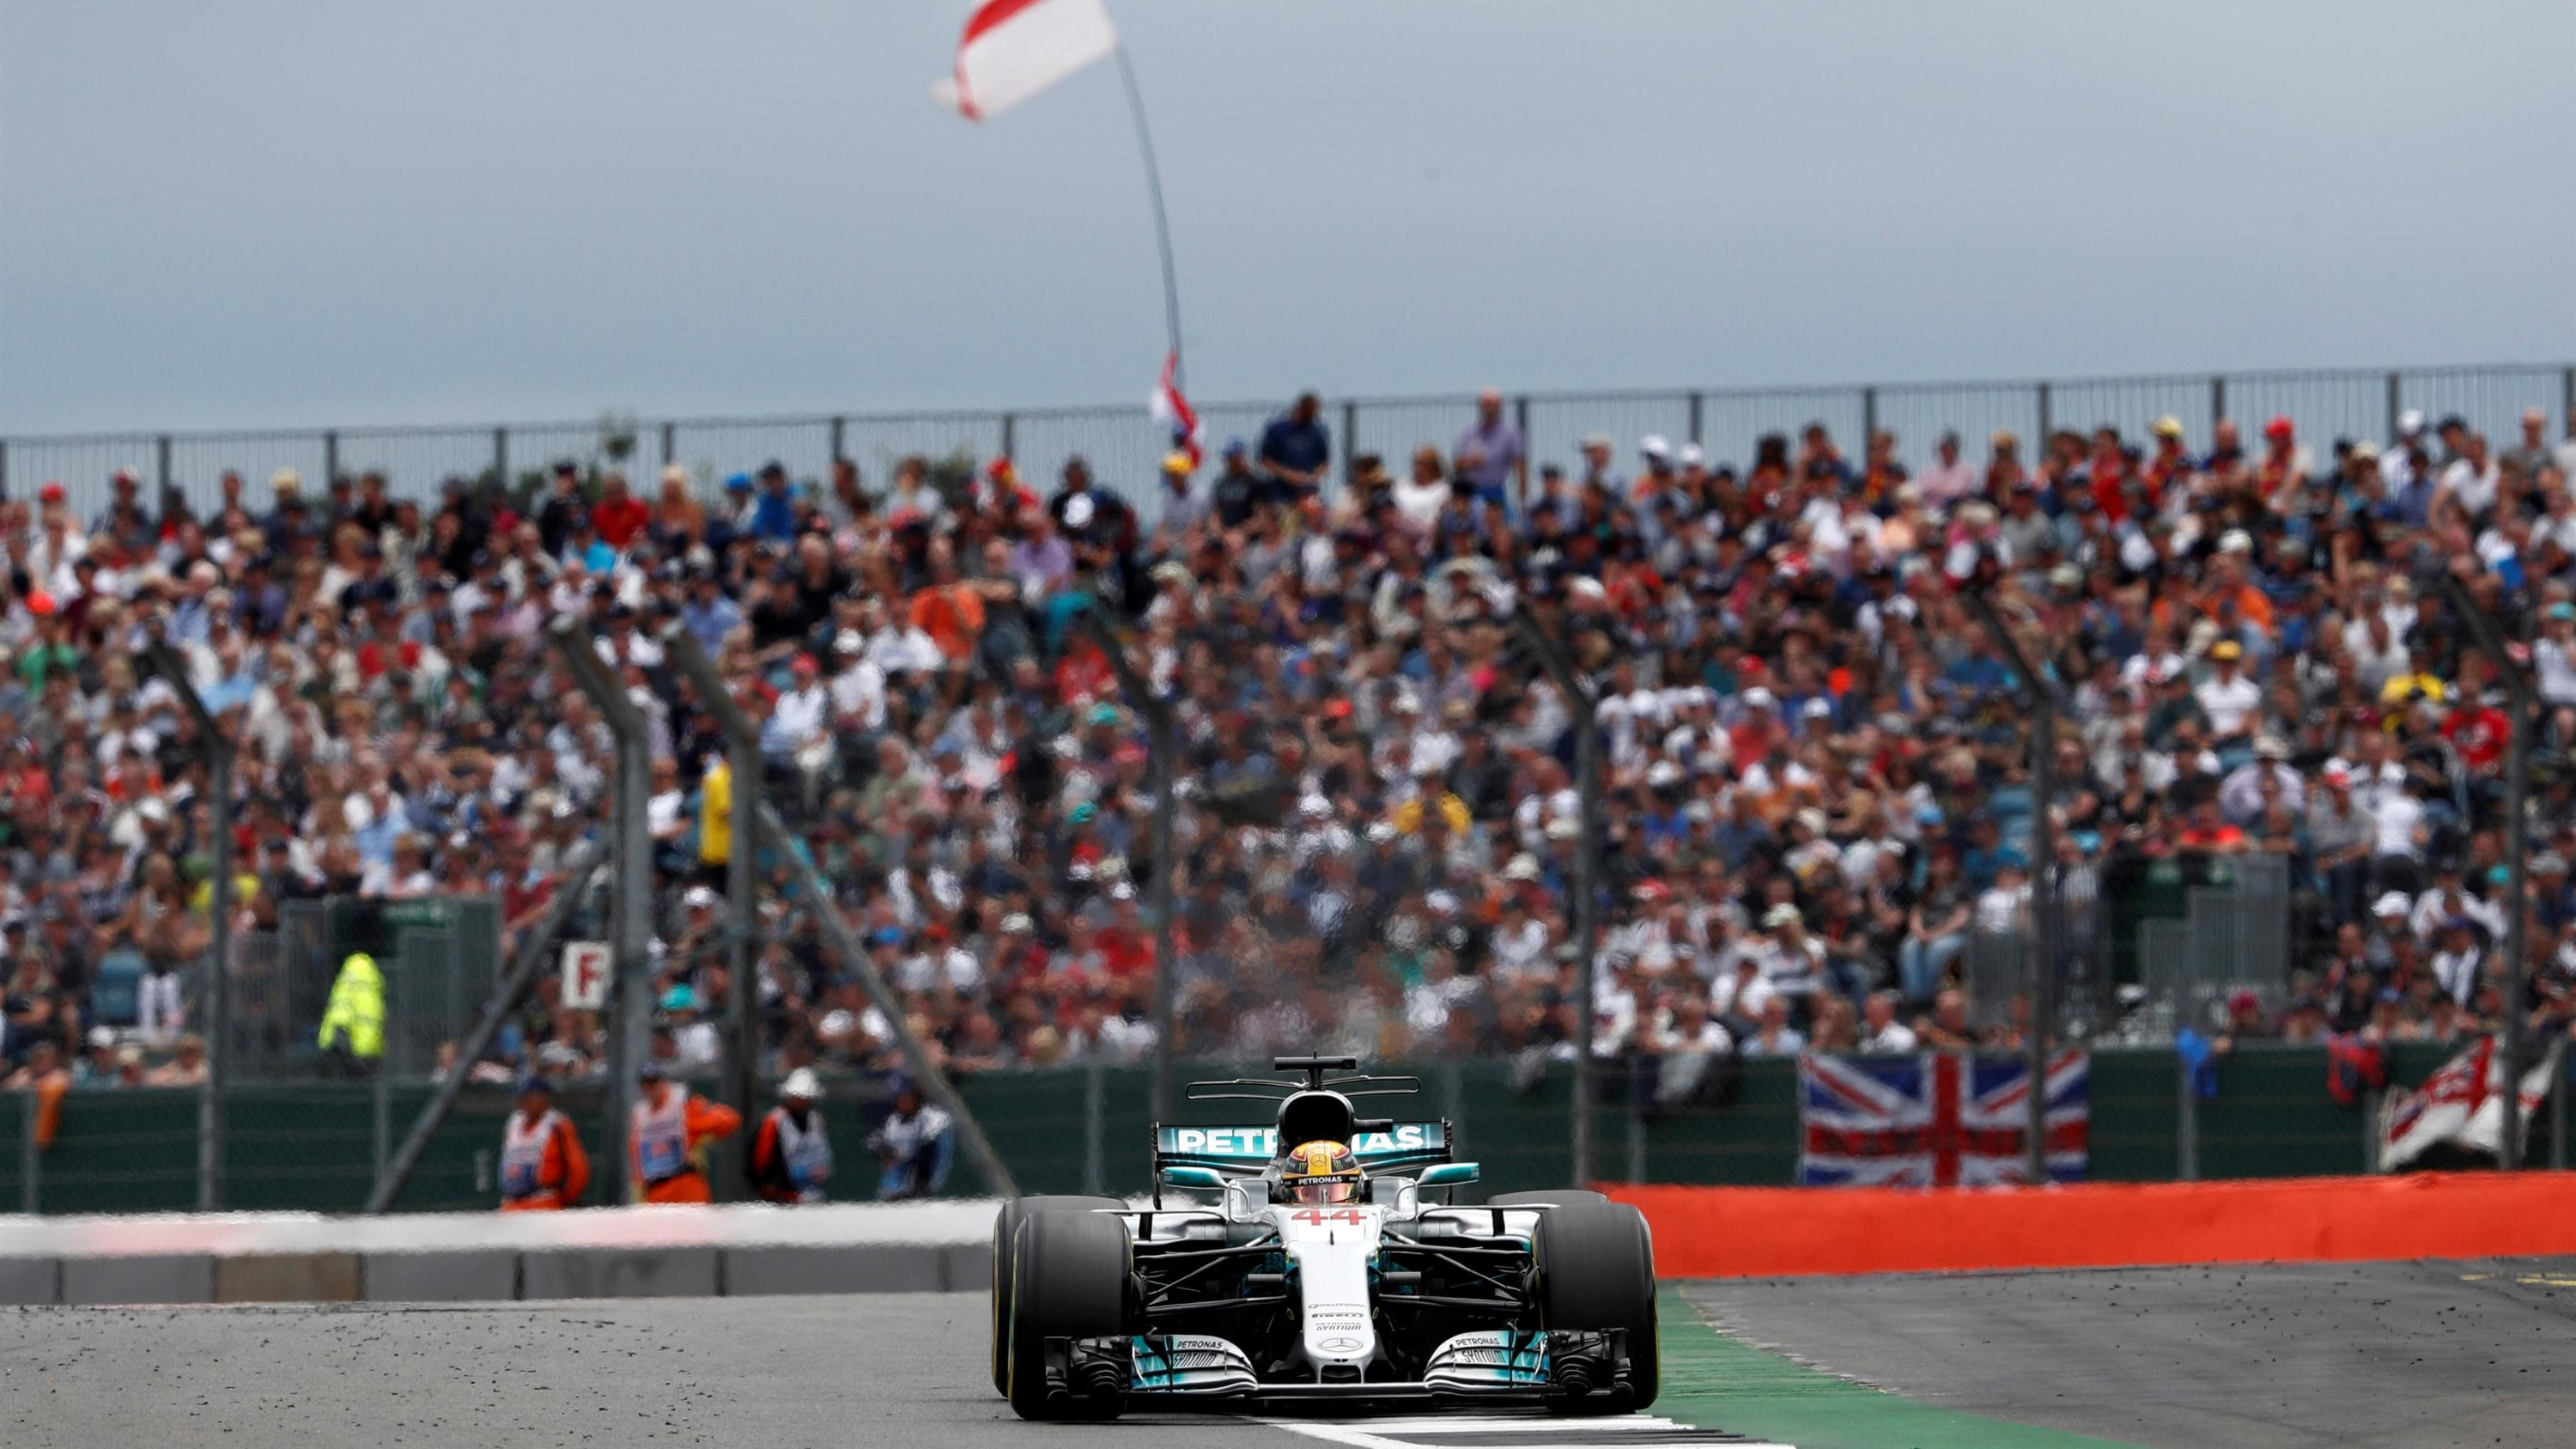 French Grand Prix qualifying: Hamilton takes POLE on Mercedes front row